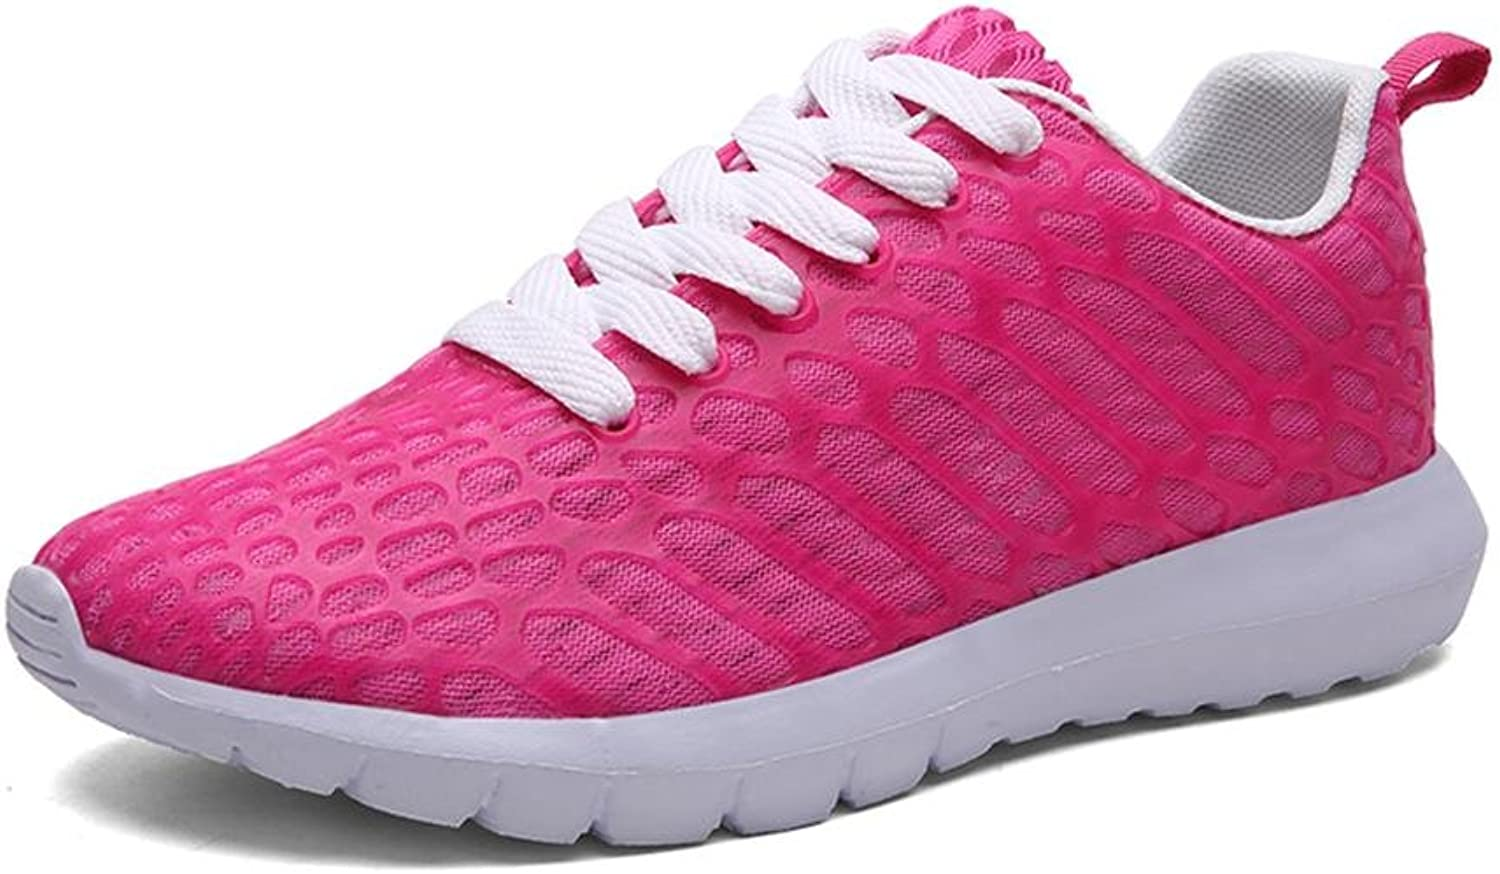 Sports shoes For Men Women Couple Trainers Gym Walking Trainers Fitness Lightweight Sports Running shoes